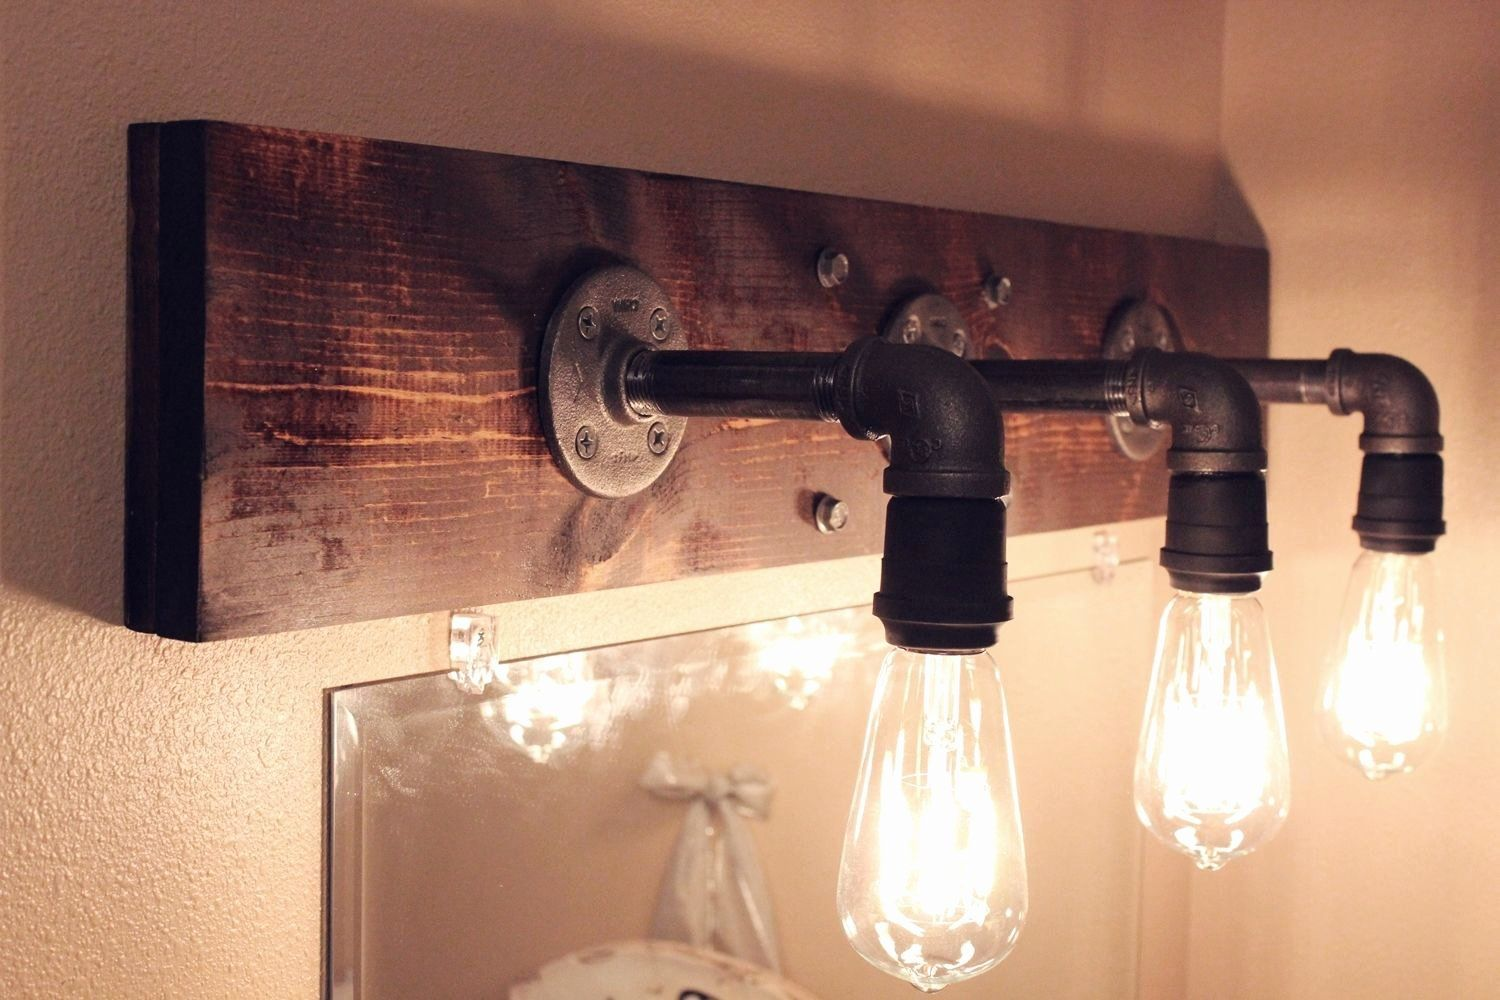 Bedrooms Vanity Lighting Ideas Beautiful Diy Industrial Bathroom Light Fixtures In 2020 Industrial Light Fixtures Bathroom Diy Light Fixtures Industrial Light Fixtures